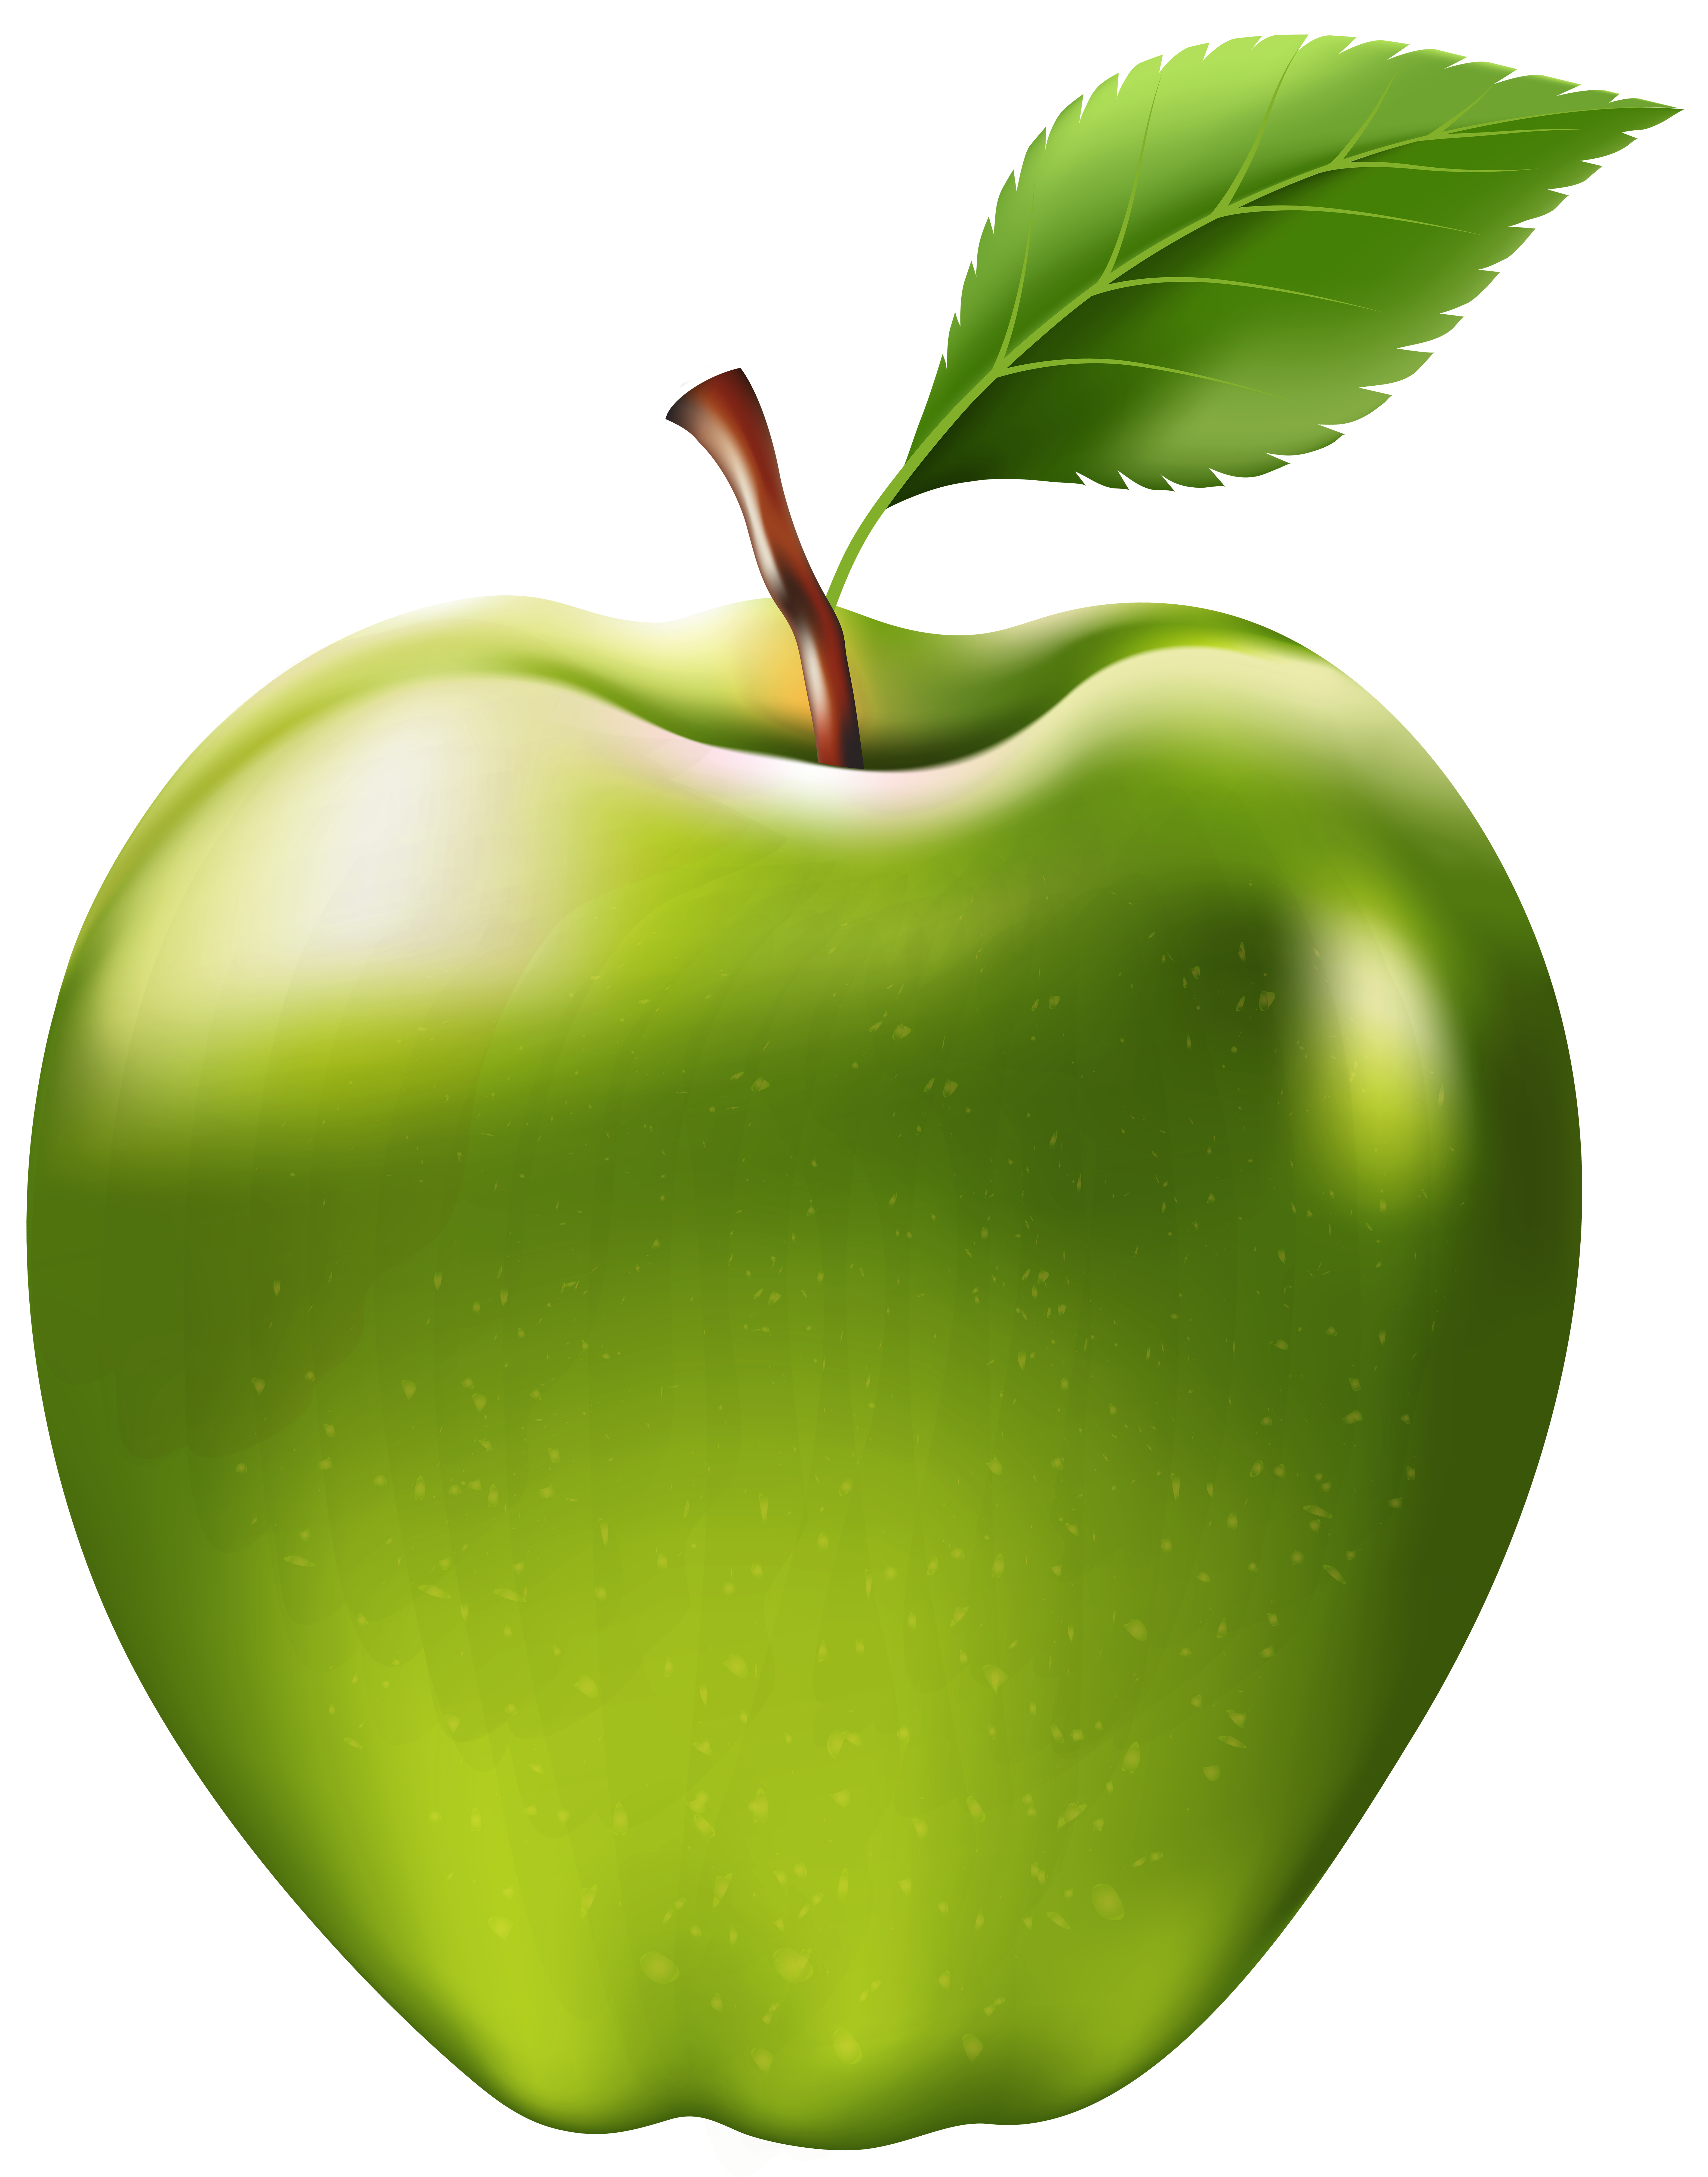 Clipart green apple clipart download Green Apple Transparent PNG Clip Art Image | Gallery Yopriceville ... clipart download